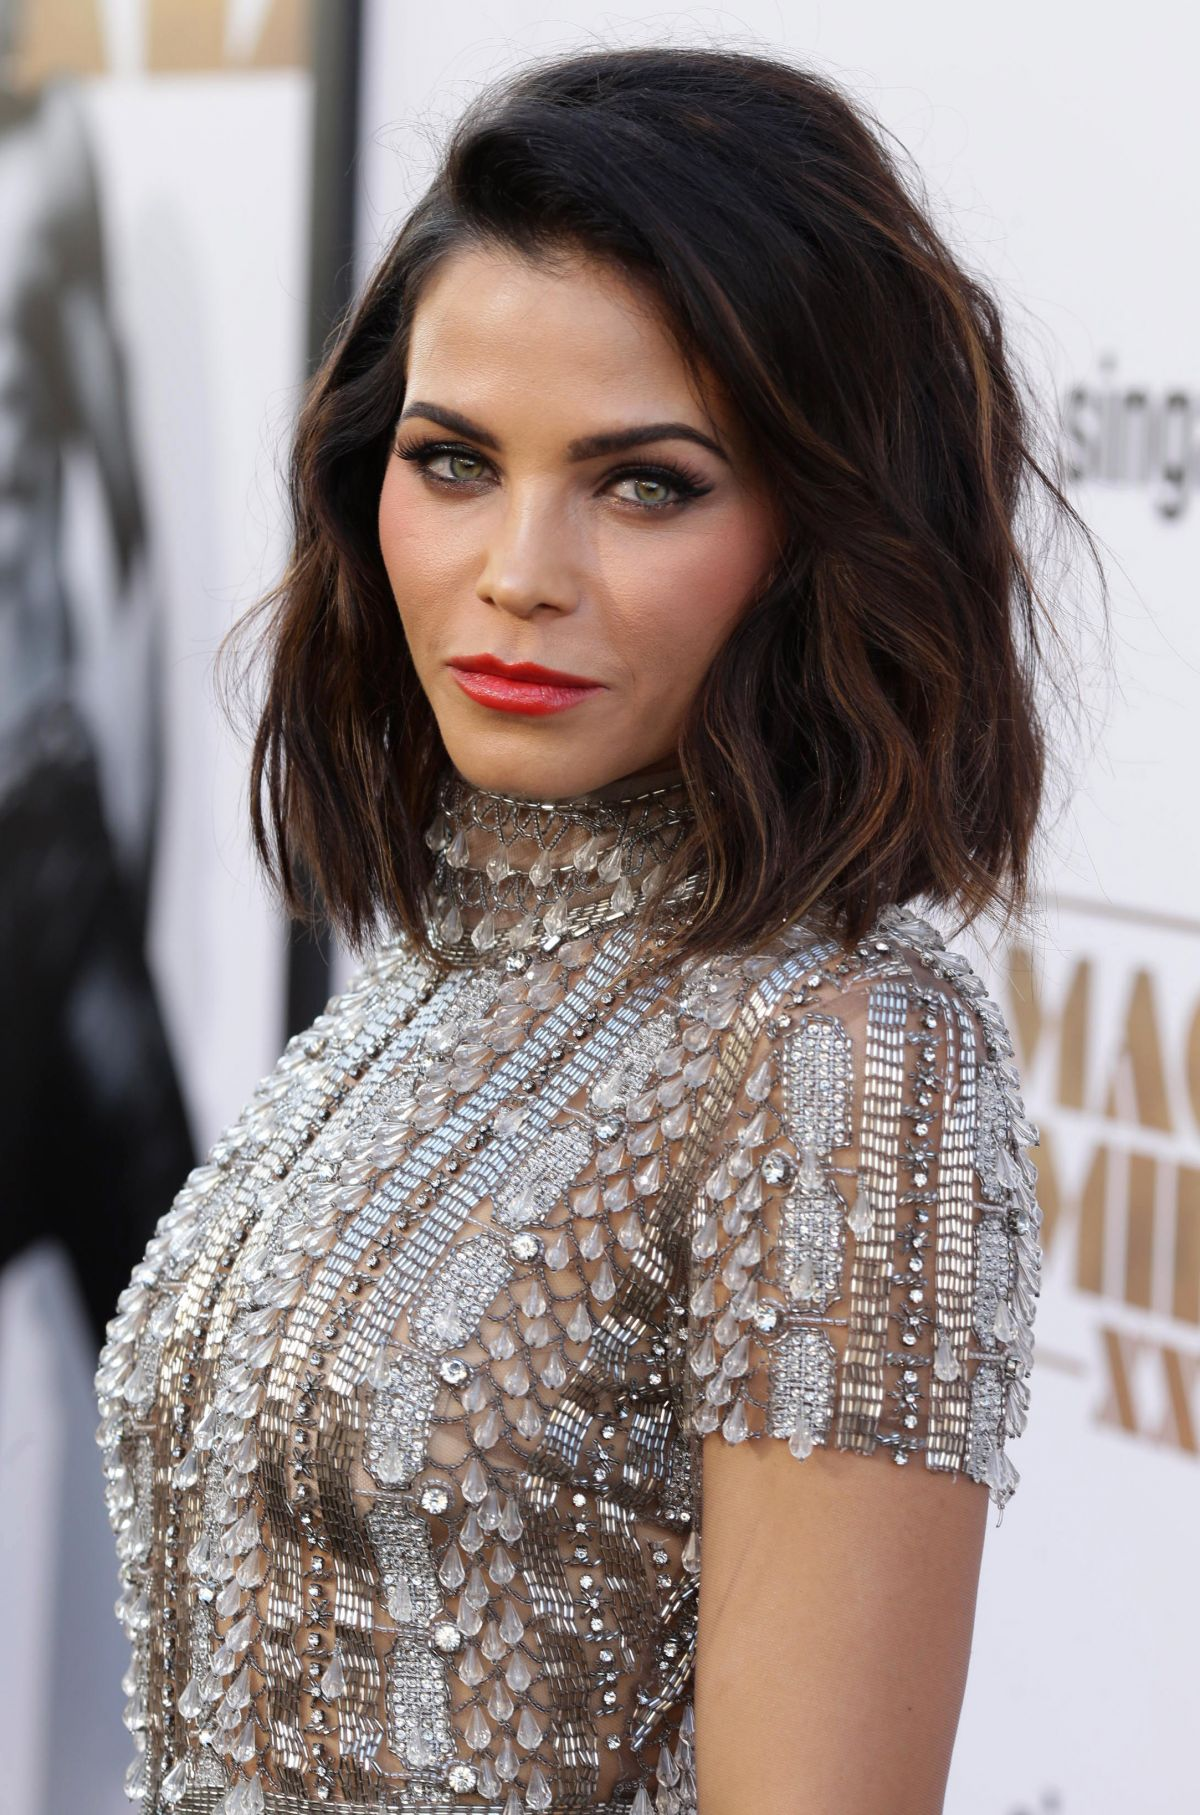 Jenna Dewan Tatum At Magic Mike XXL Premiere - Celebzz ... Kate Hudson Short Hair